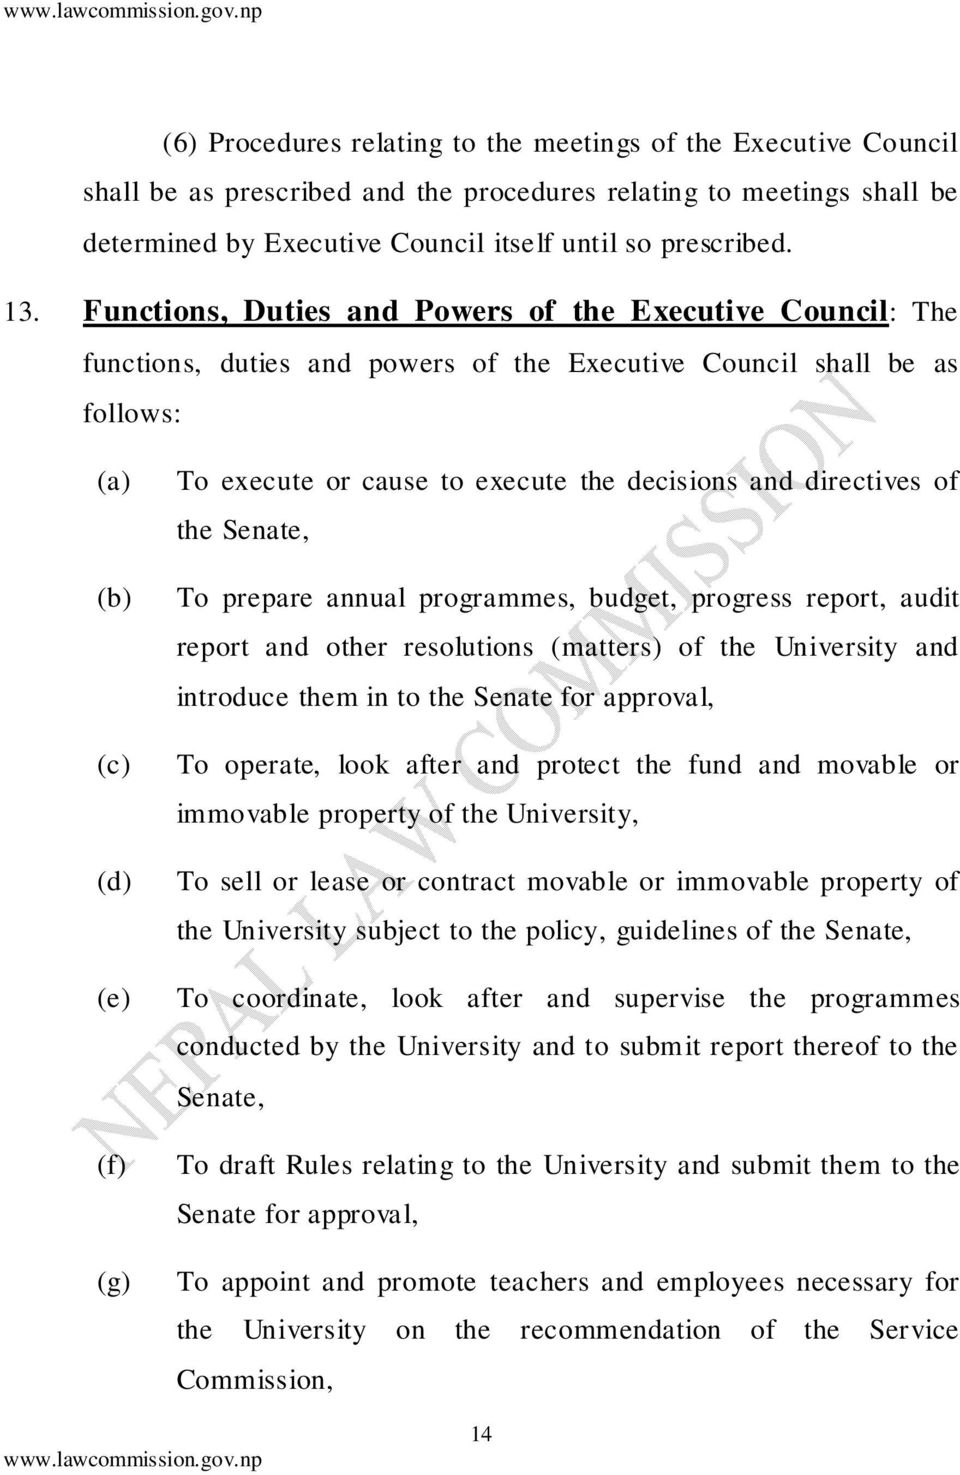 decisions and directives of the Senate, To prepare annual programmes, budget, progress report, audit report and other resolutions (matters) of the University and introduce them in to the Senate for